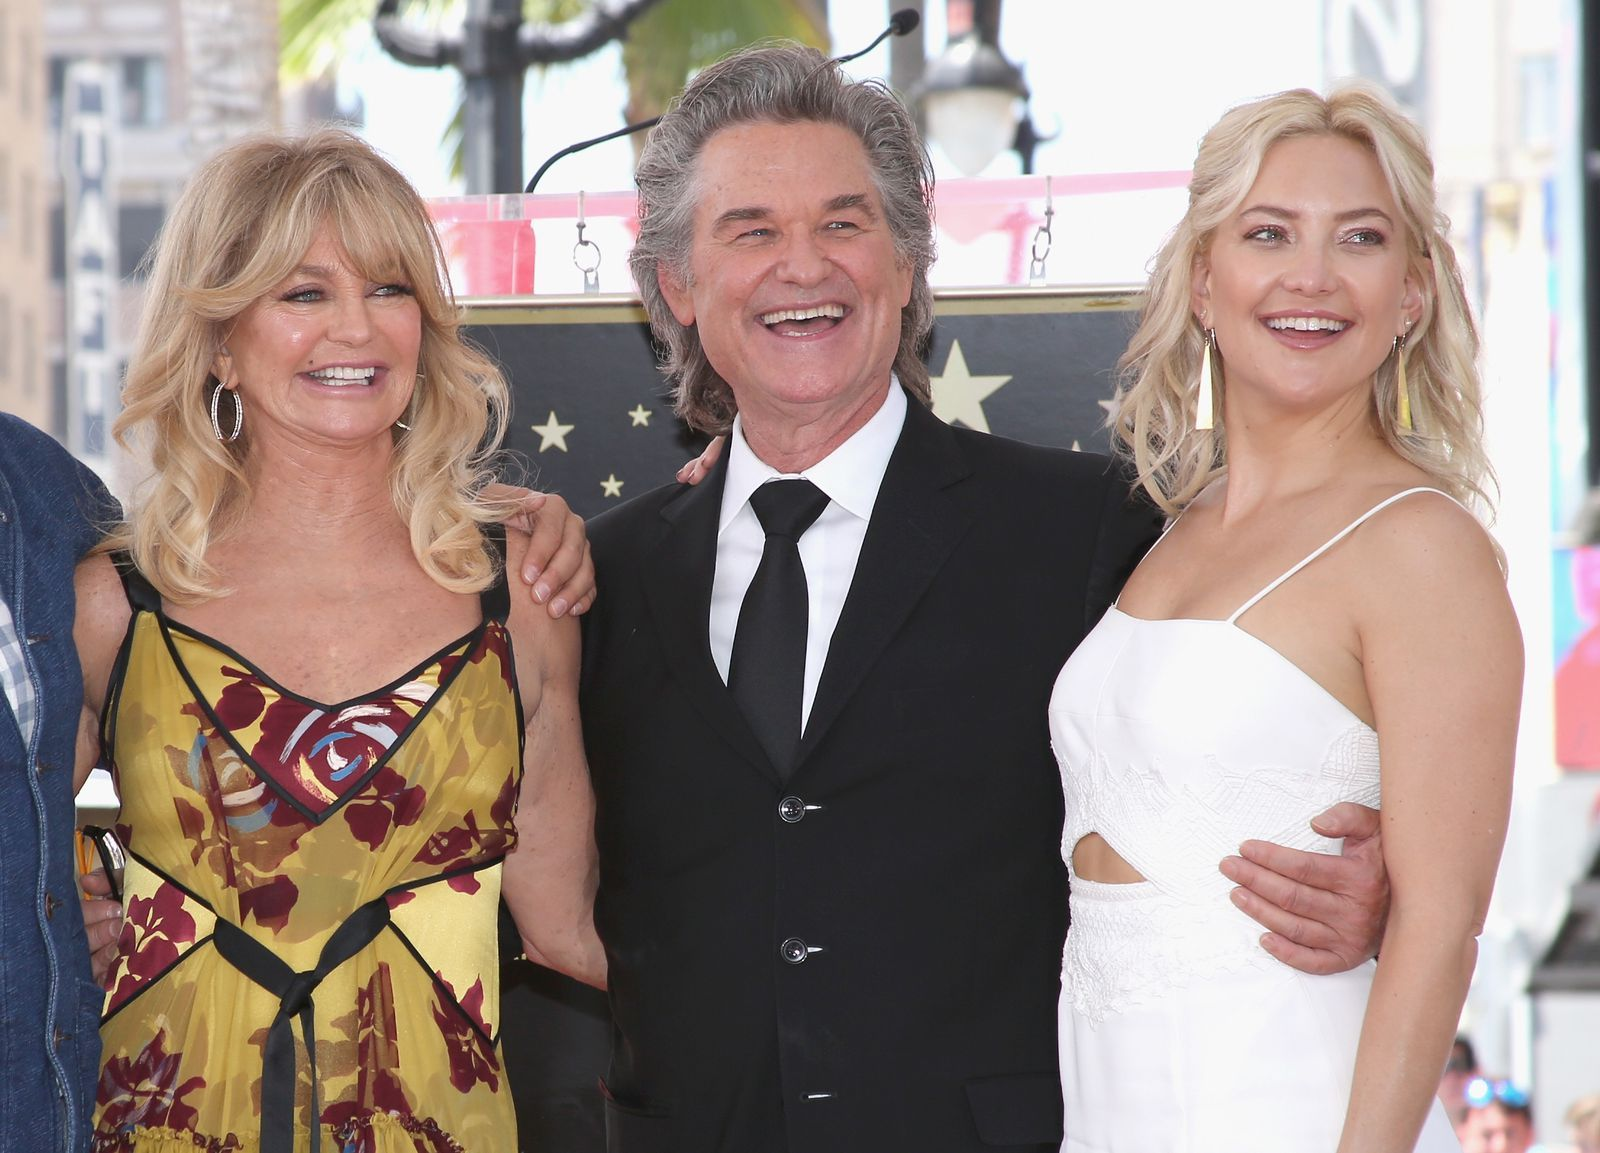 Kate Hudson S Photo Of Baby Rani With Goldie Hawn Kurt Russell Is So Sweet Goldie Hawn Kurt Russell Goldie Hawn Kate Hudson